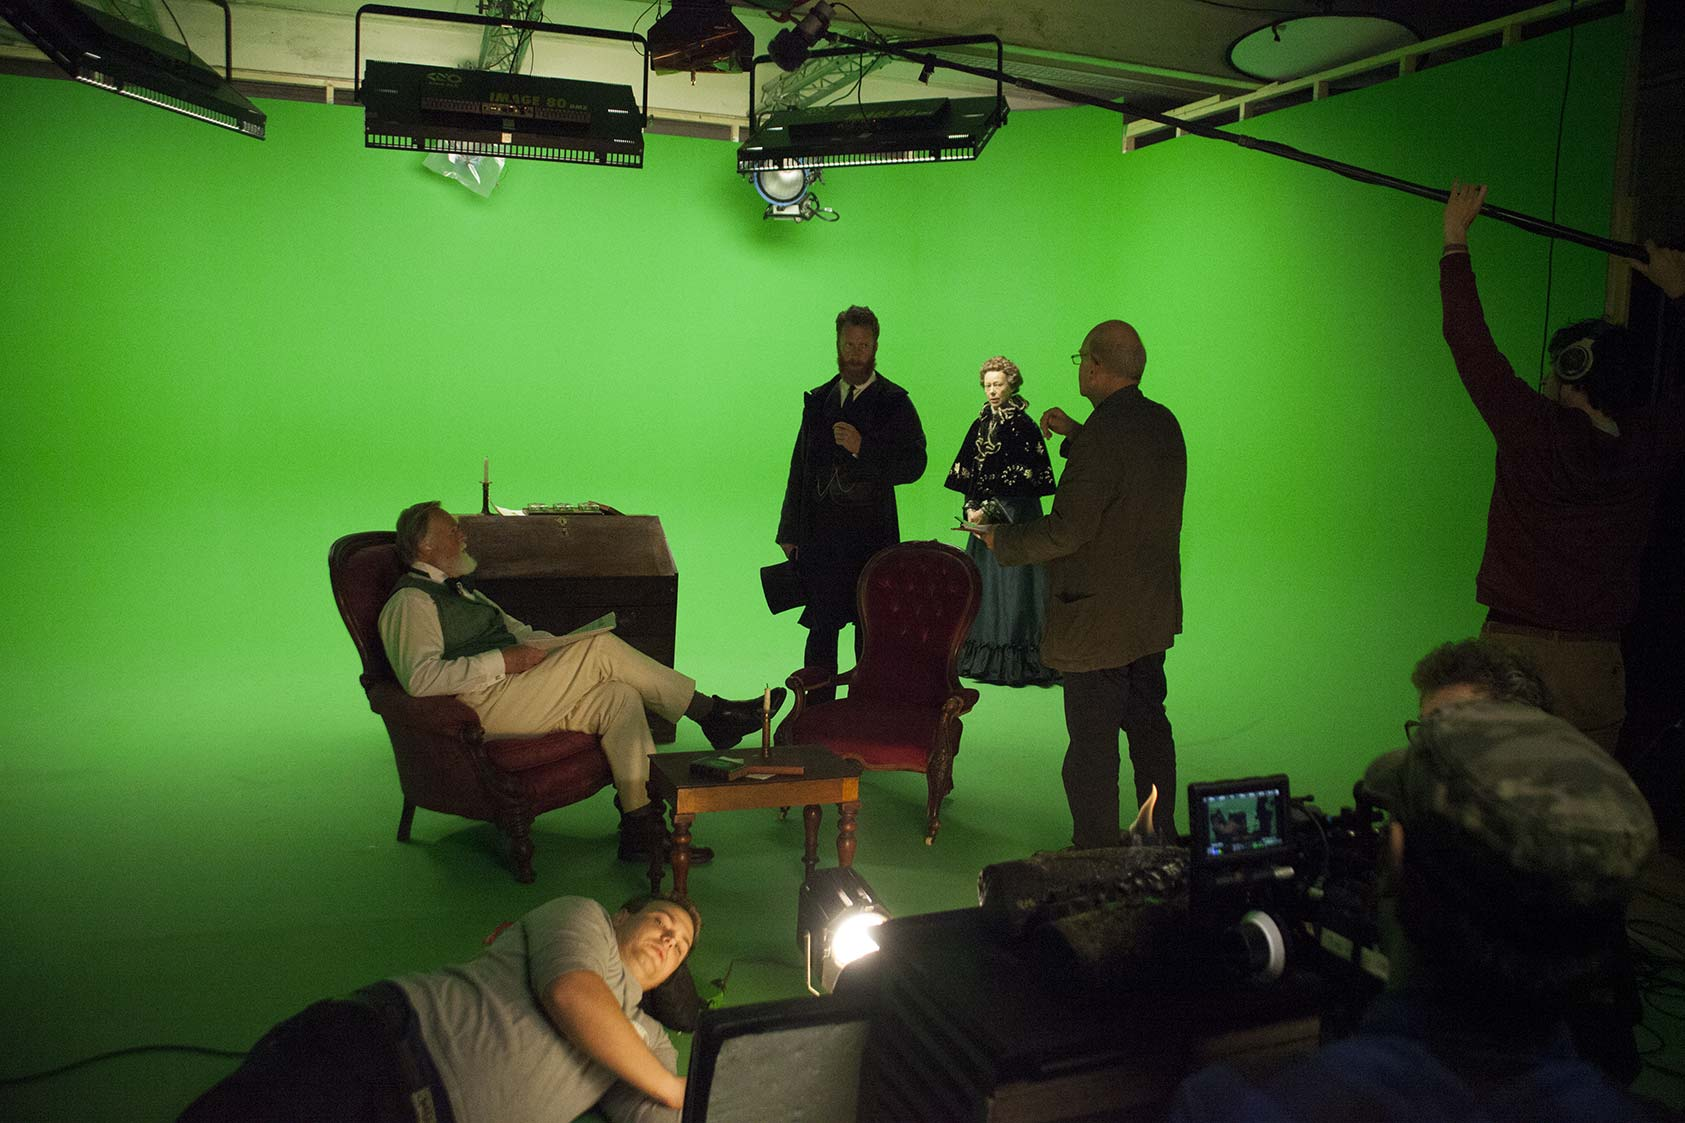 Krowji green screen studio